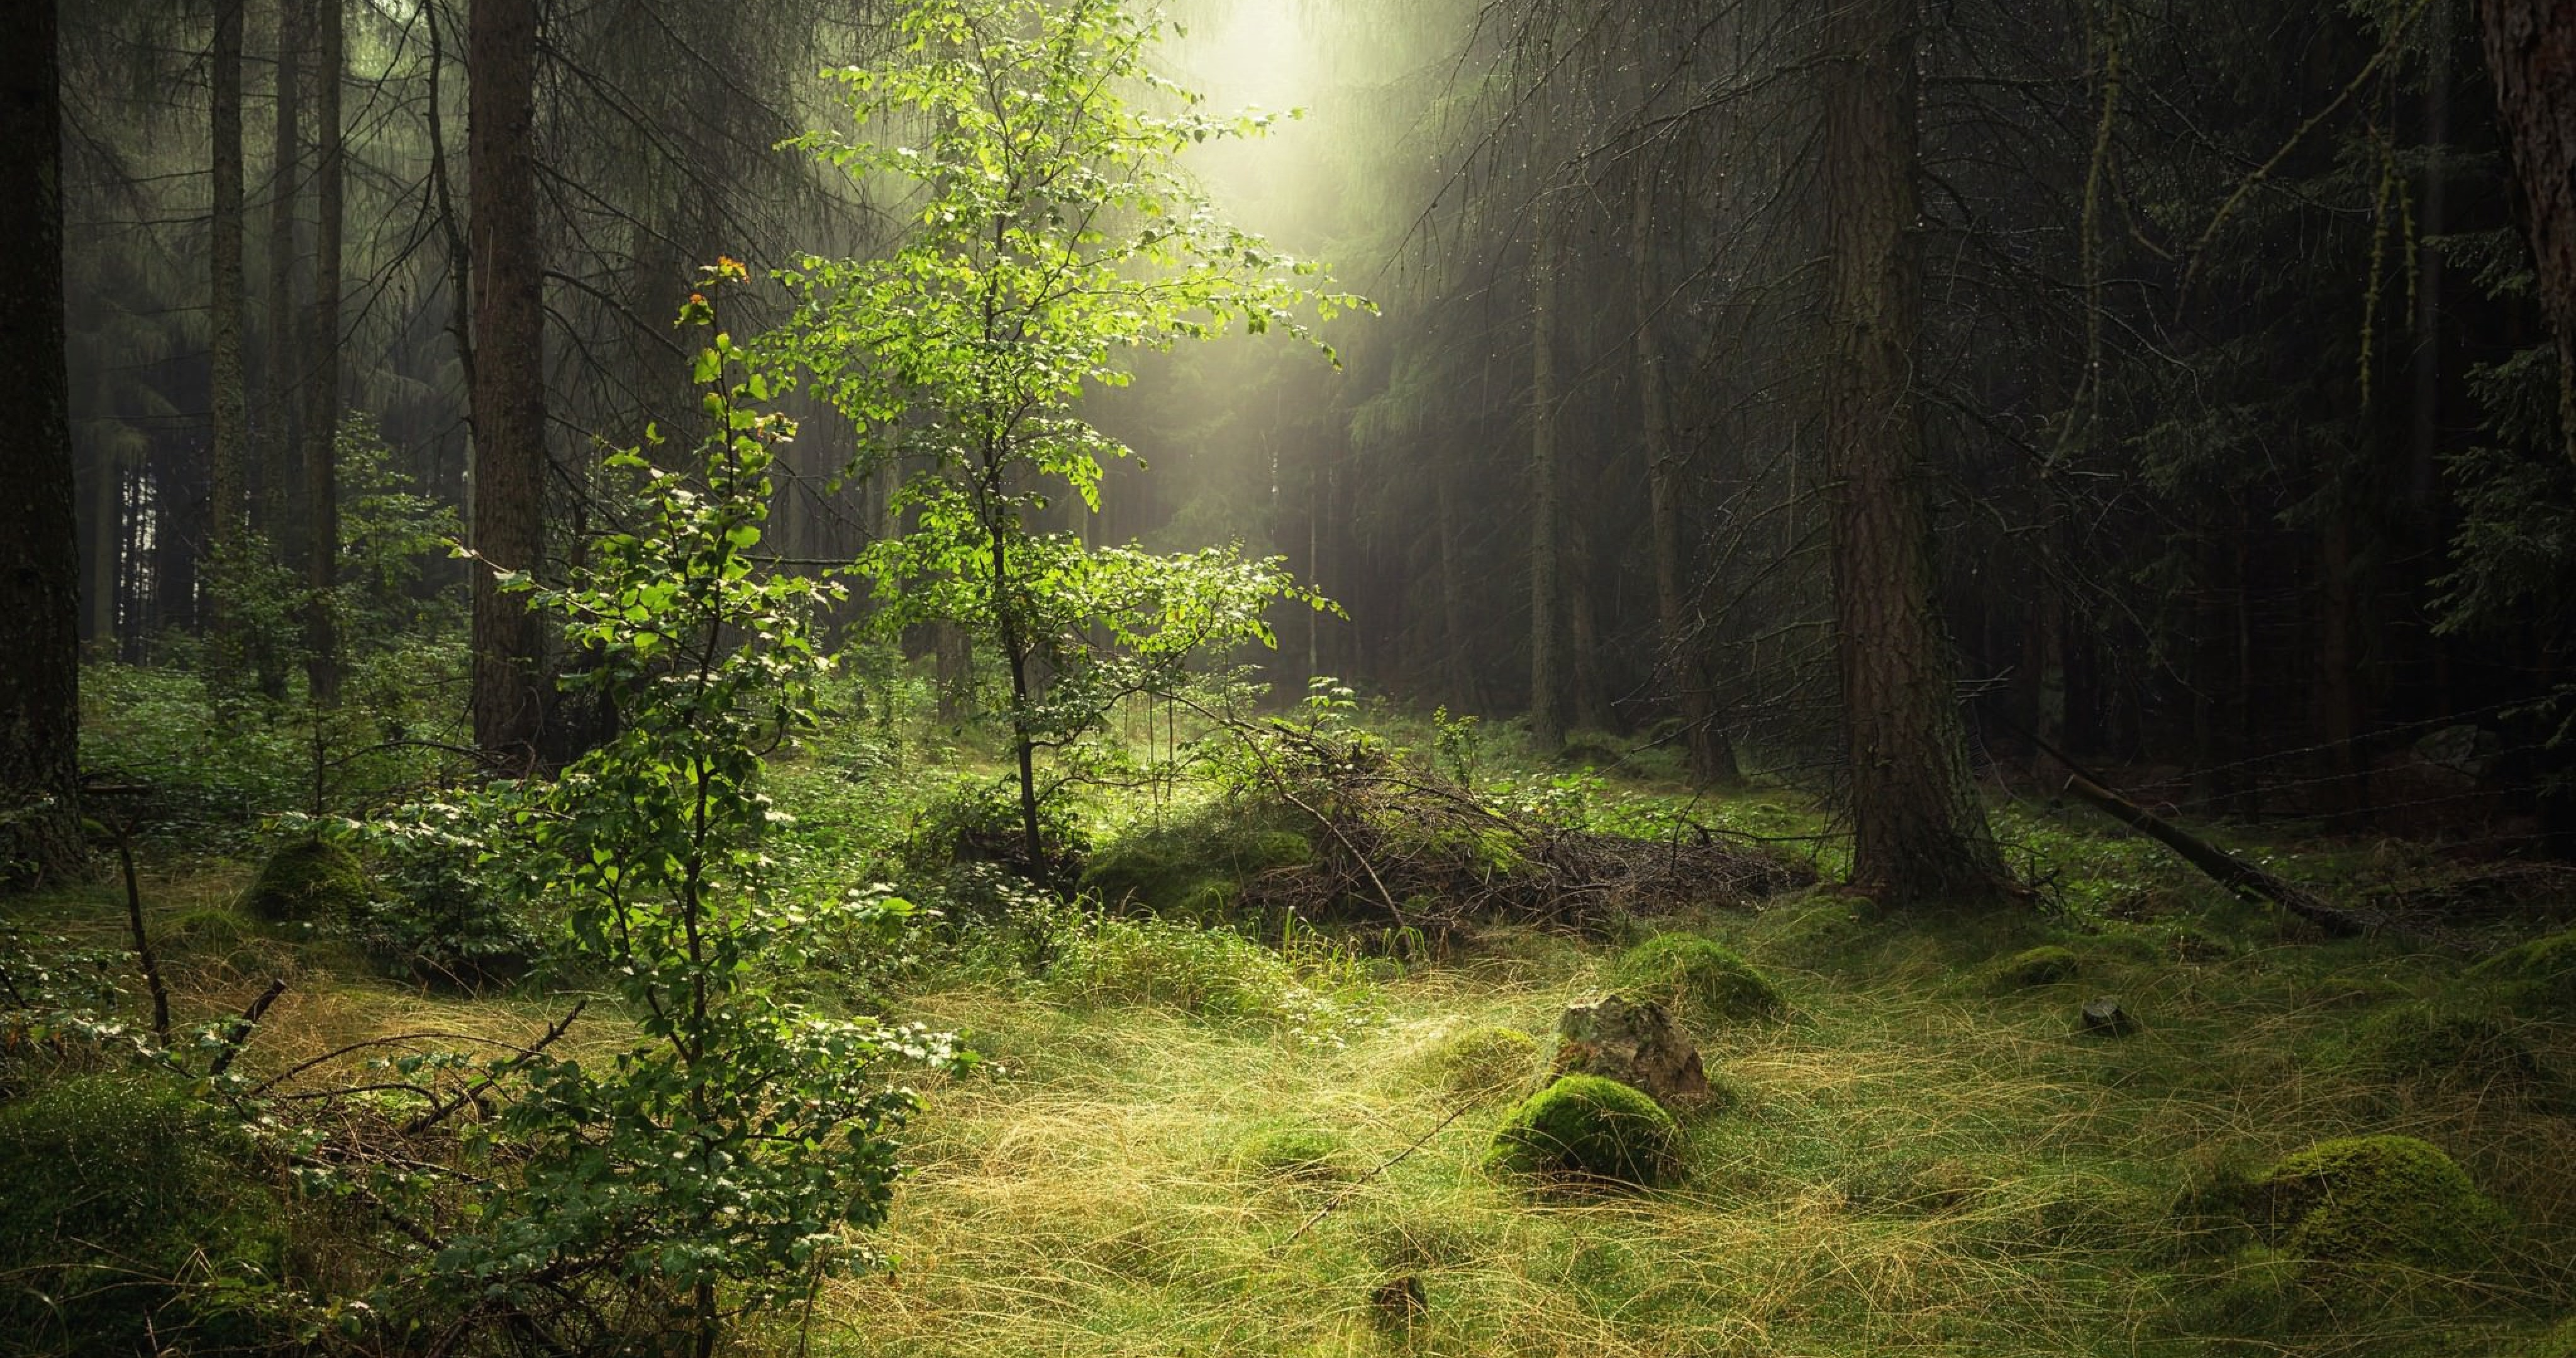 Amazing Wallpaper High Quality Forest - 71548-morning-forest-nature-4k-ultra-hd-wallpaper__nature  Photograph_245889.jpg